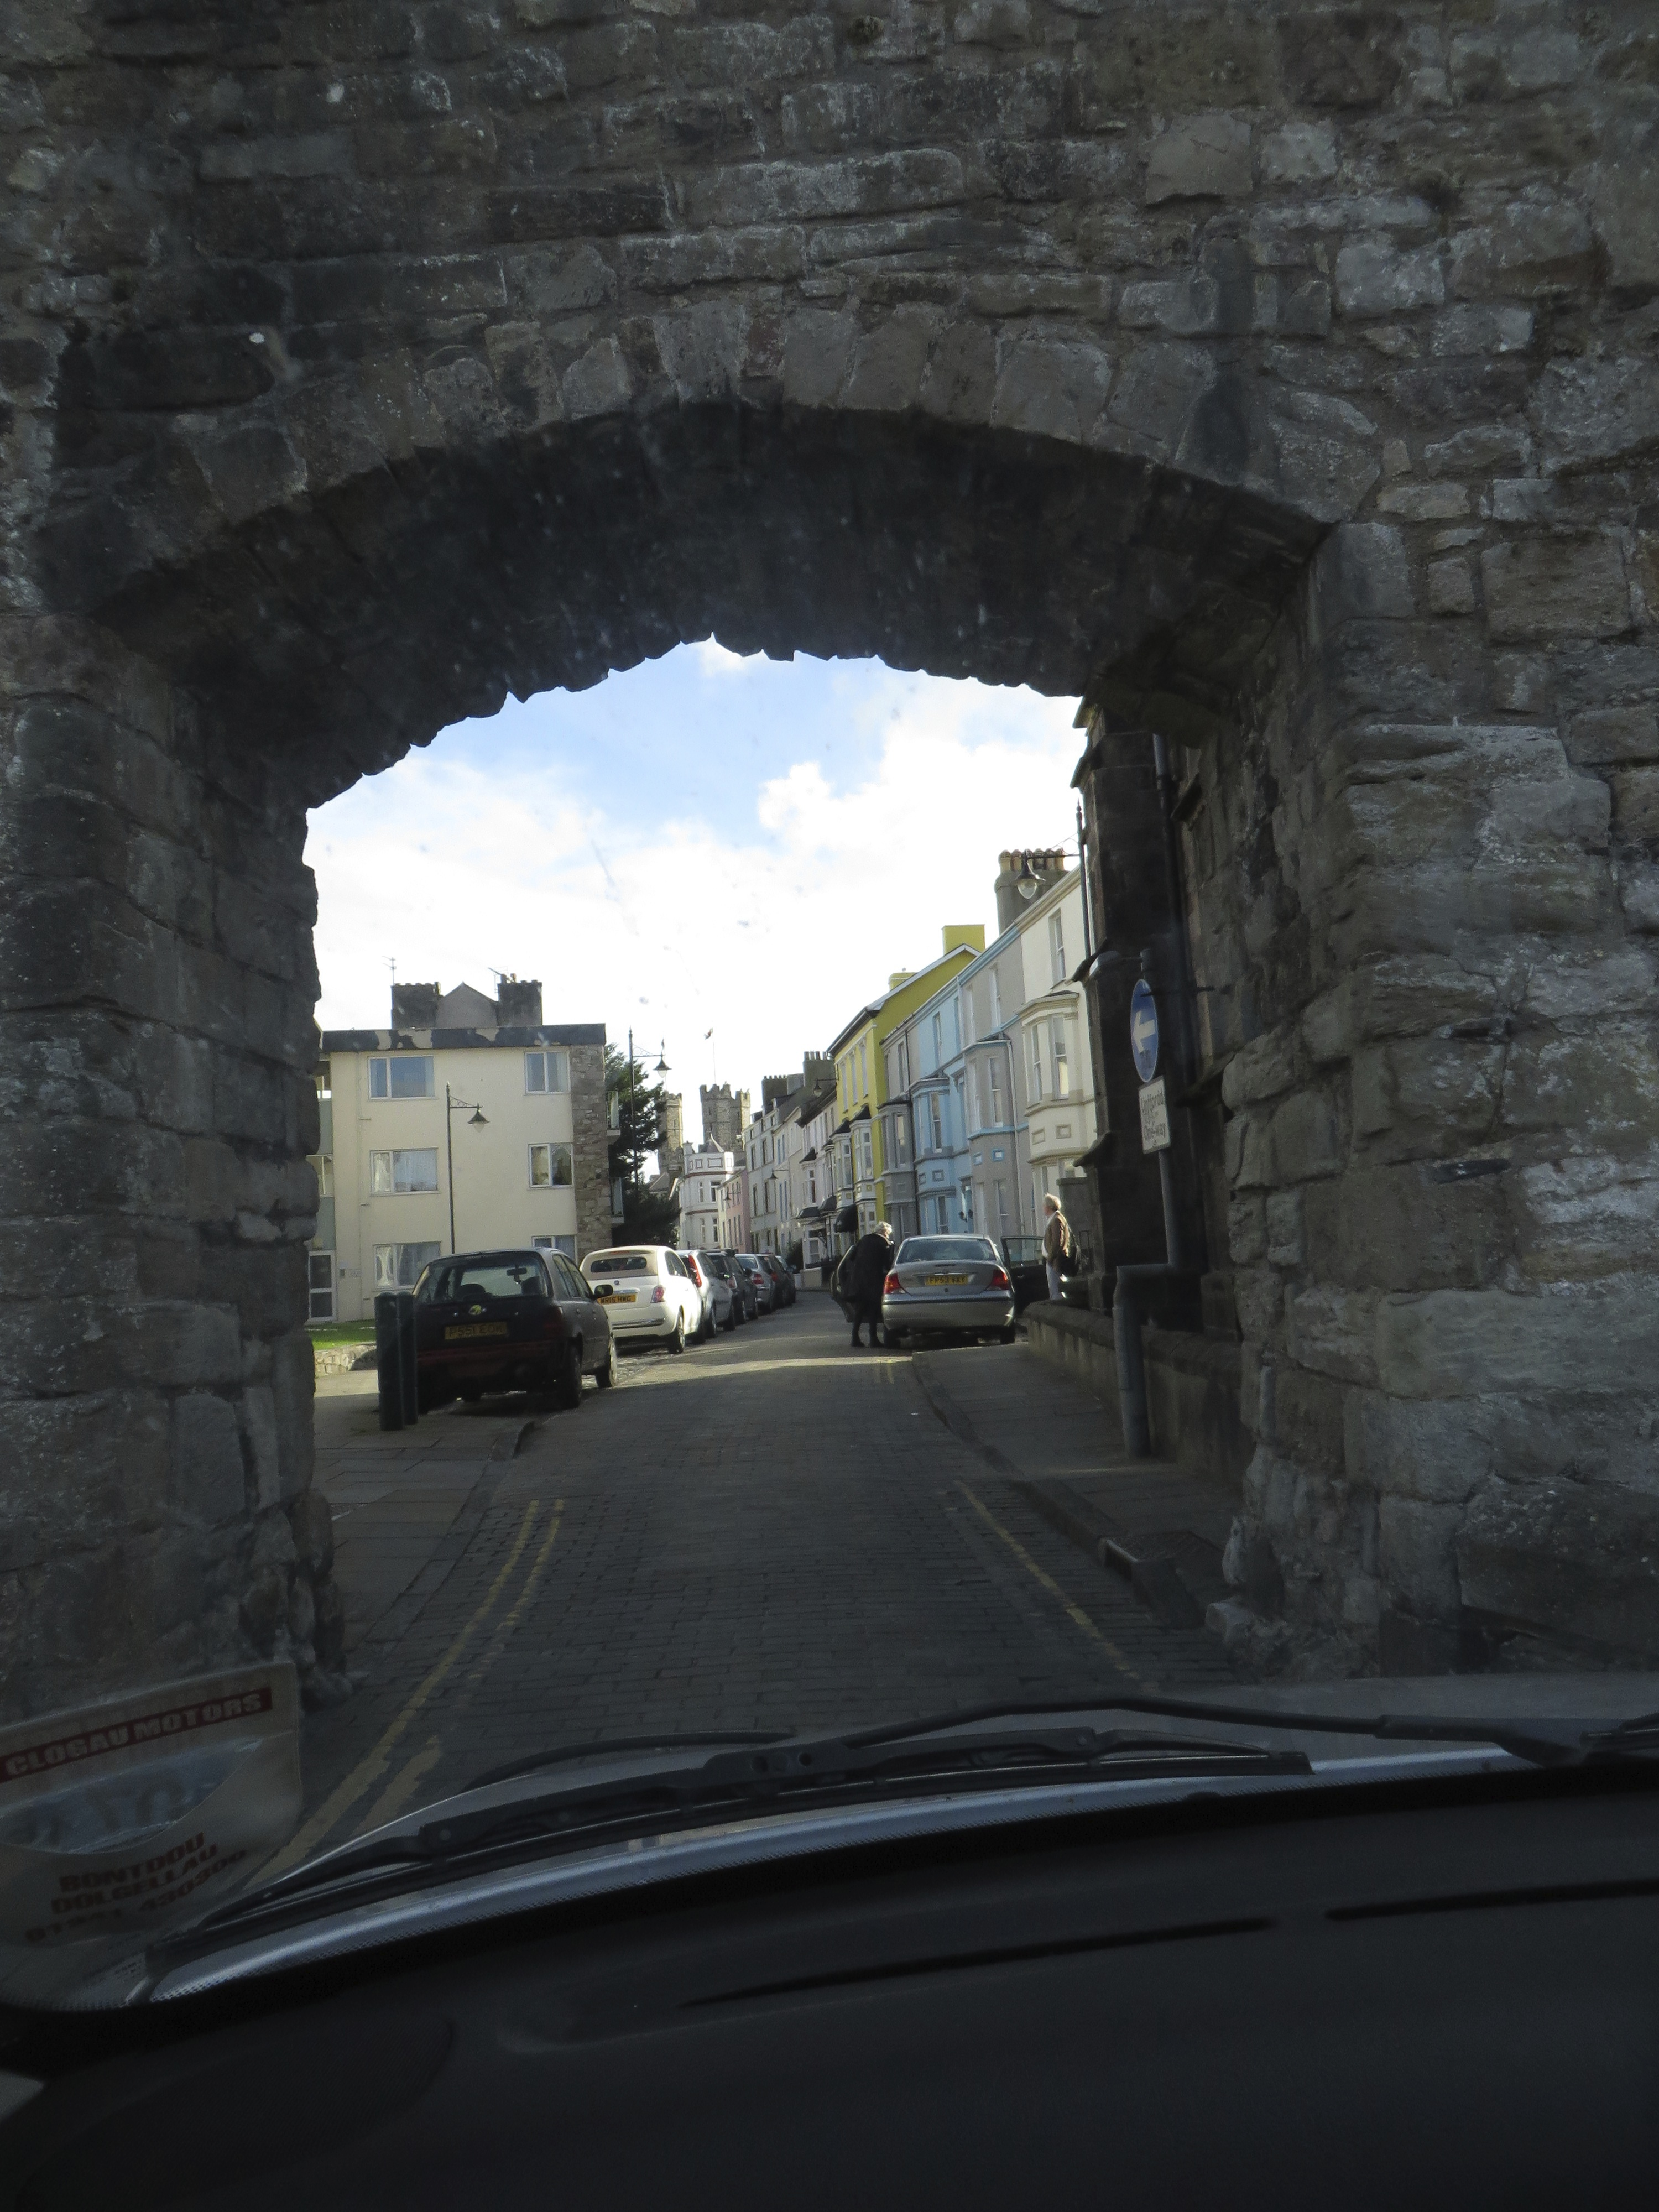 The narrow roads of Conwy